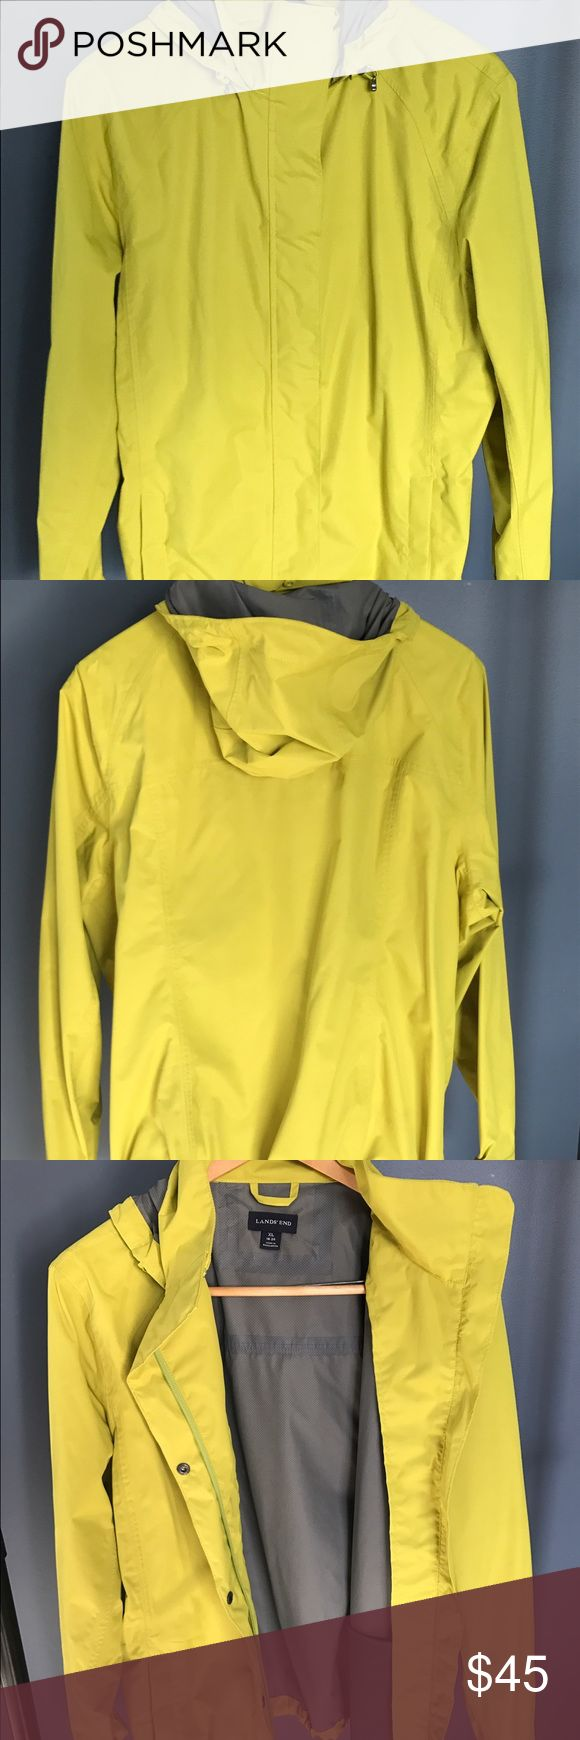 "Women's Lands End hooded rain coat. Size XL 18-30 Lands End rain jacket. Women XL 18-20. Has hood which can be rolled up & snapped into collar, zips & snaps up front, 2 front zip pockets. 2 inside mesh pockets, draw cords on each side of waist for perfect fit & to keep dry Distinctive color-hard to describe-a dusky pea green. I bought this for a trip to Disney, it stood out so my kids could easily find me in crowds- worked perfect! I've since ""under grown"" it. 28 in from bottom of collar to…"